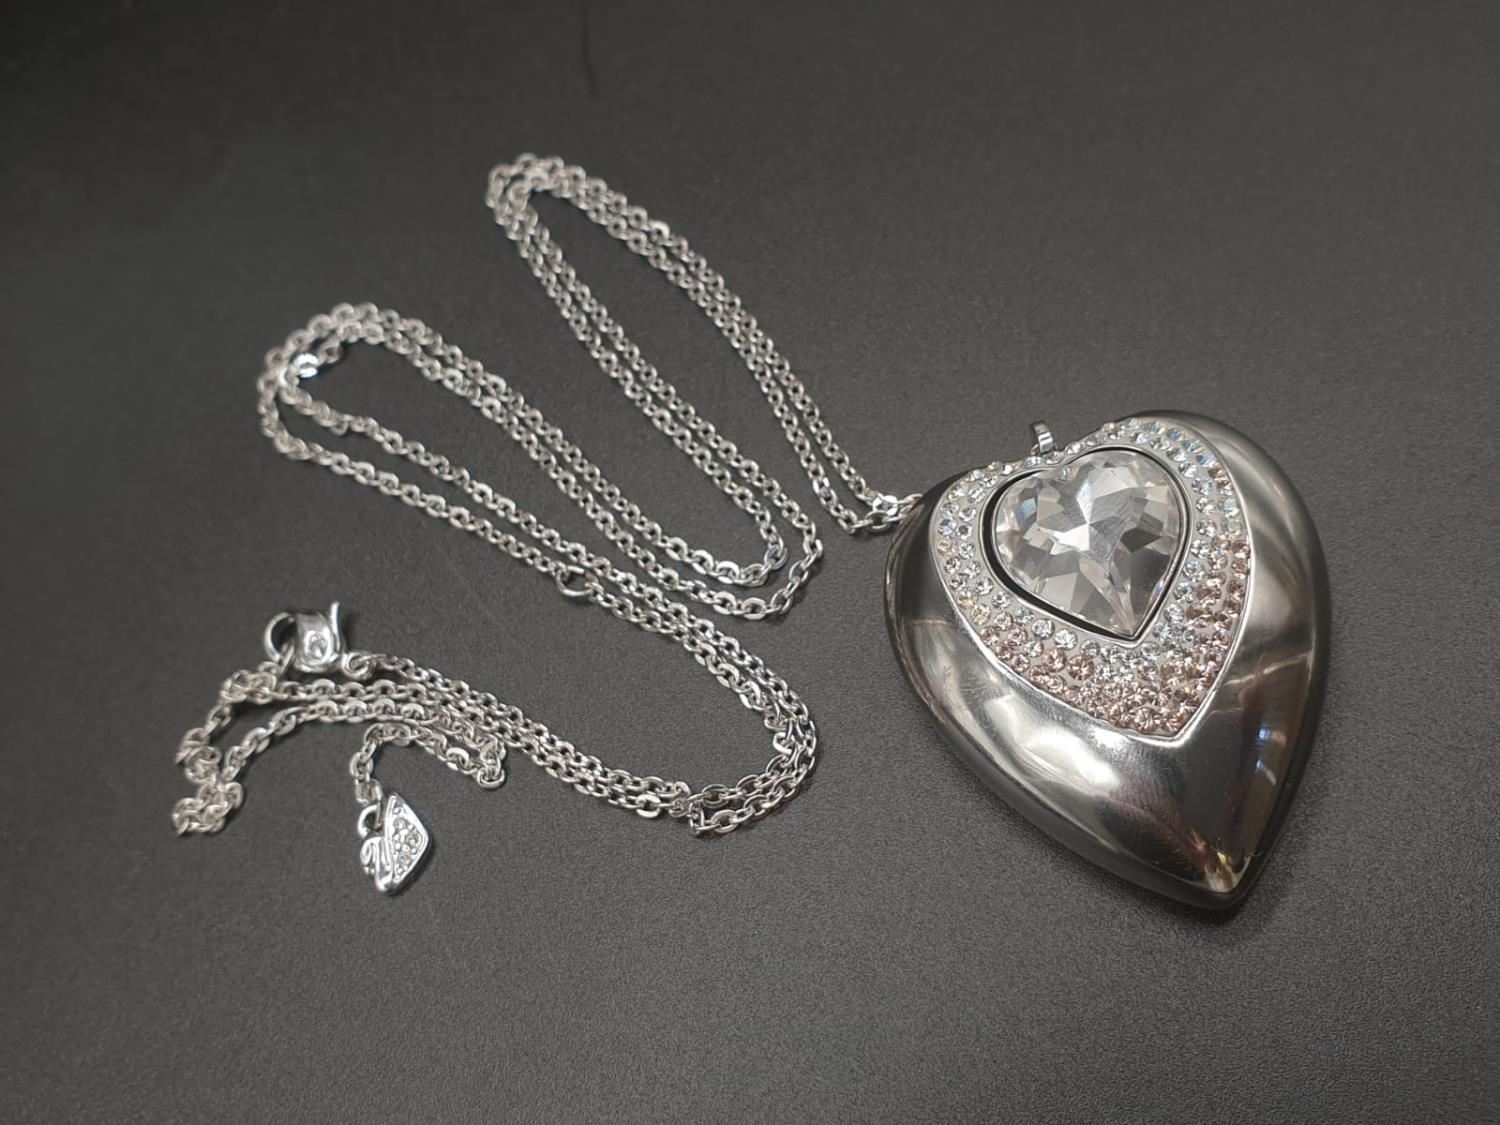 Swarovski Women's Metallic Active Crystal Heart-Shaped Pendant with built-in 8GB USB. 76cm As new, - Image 2 of 10